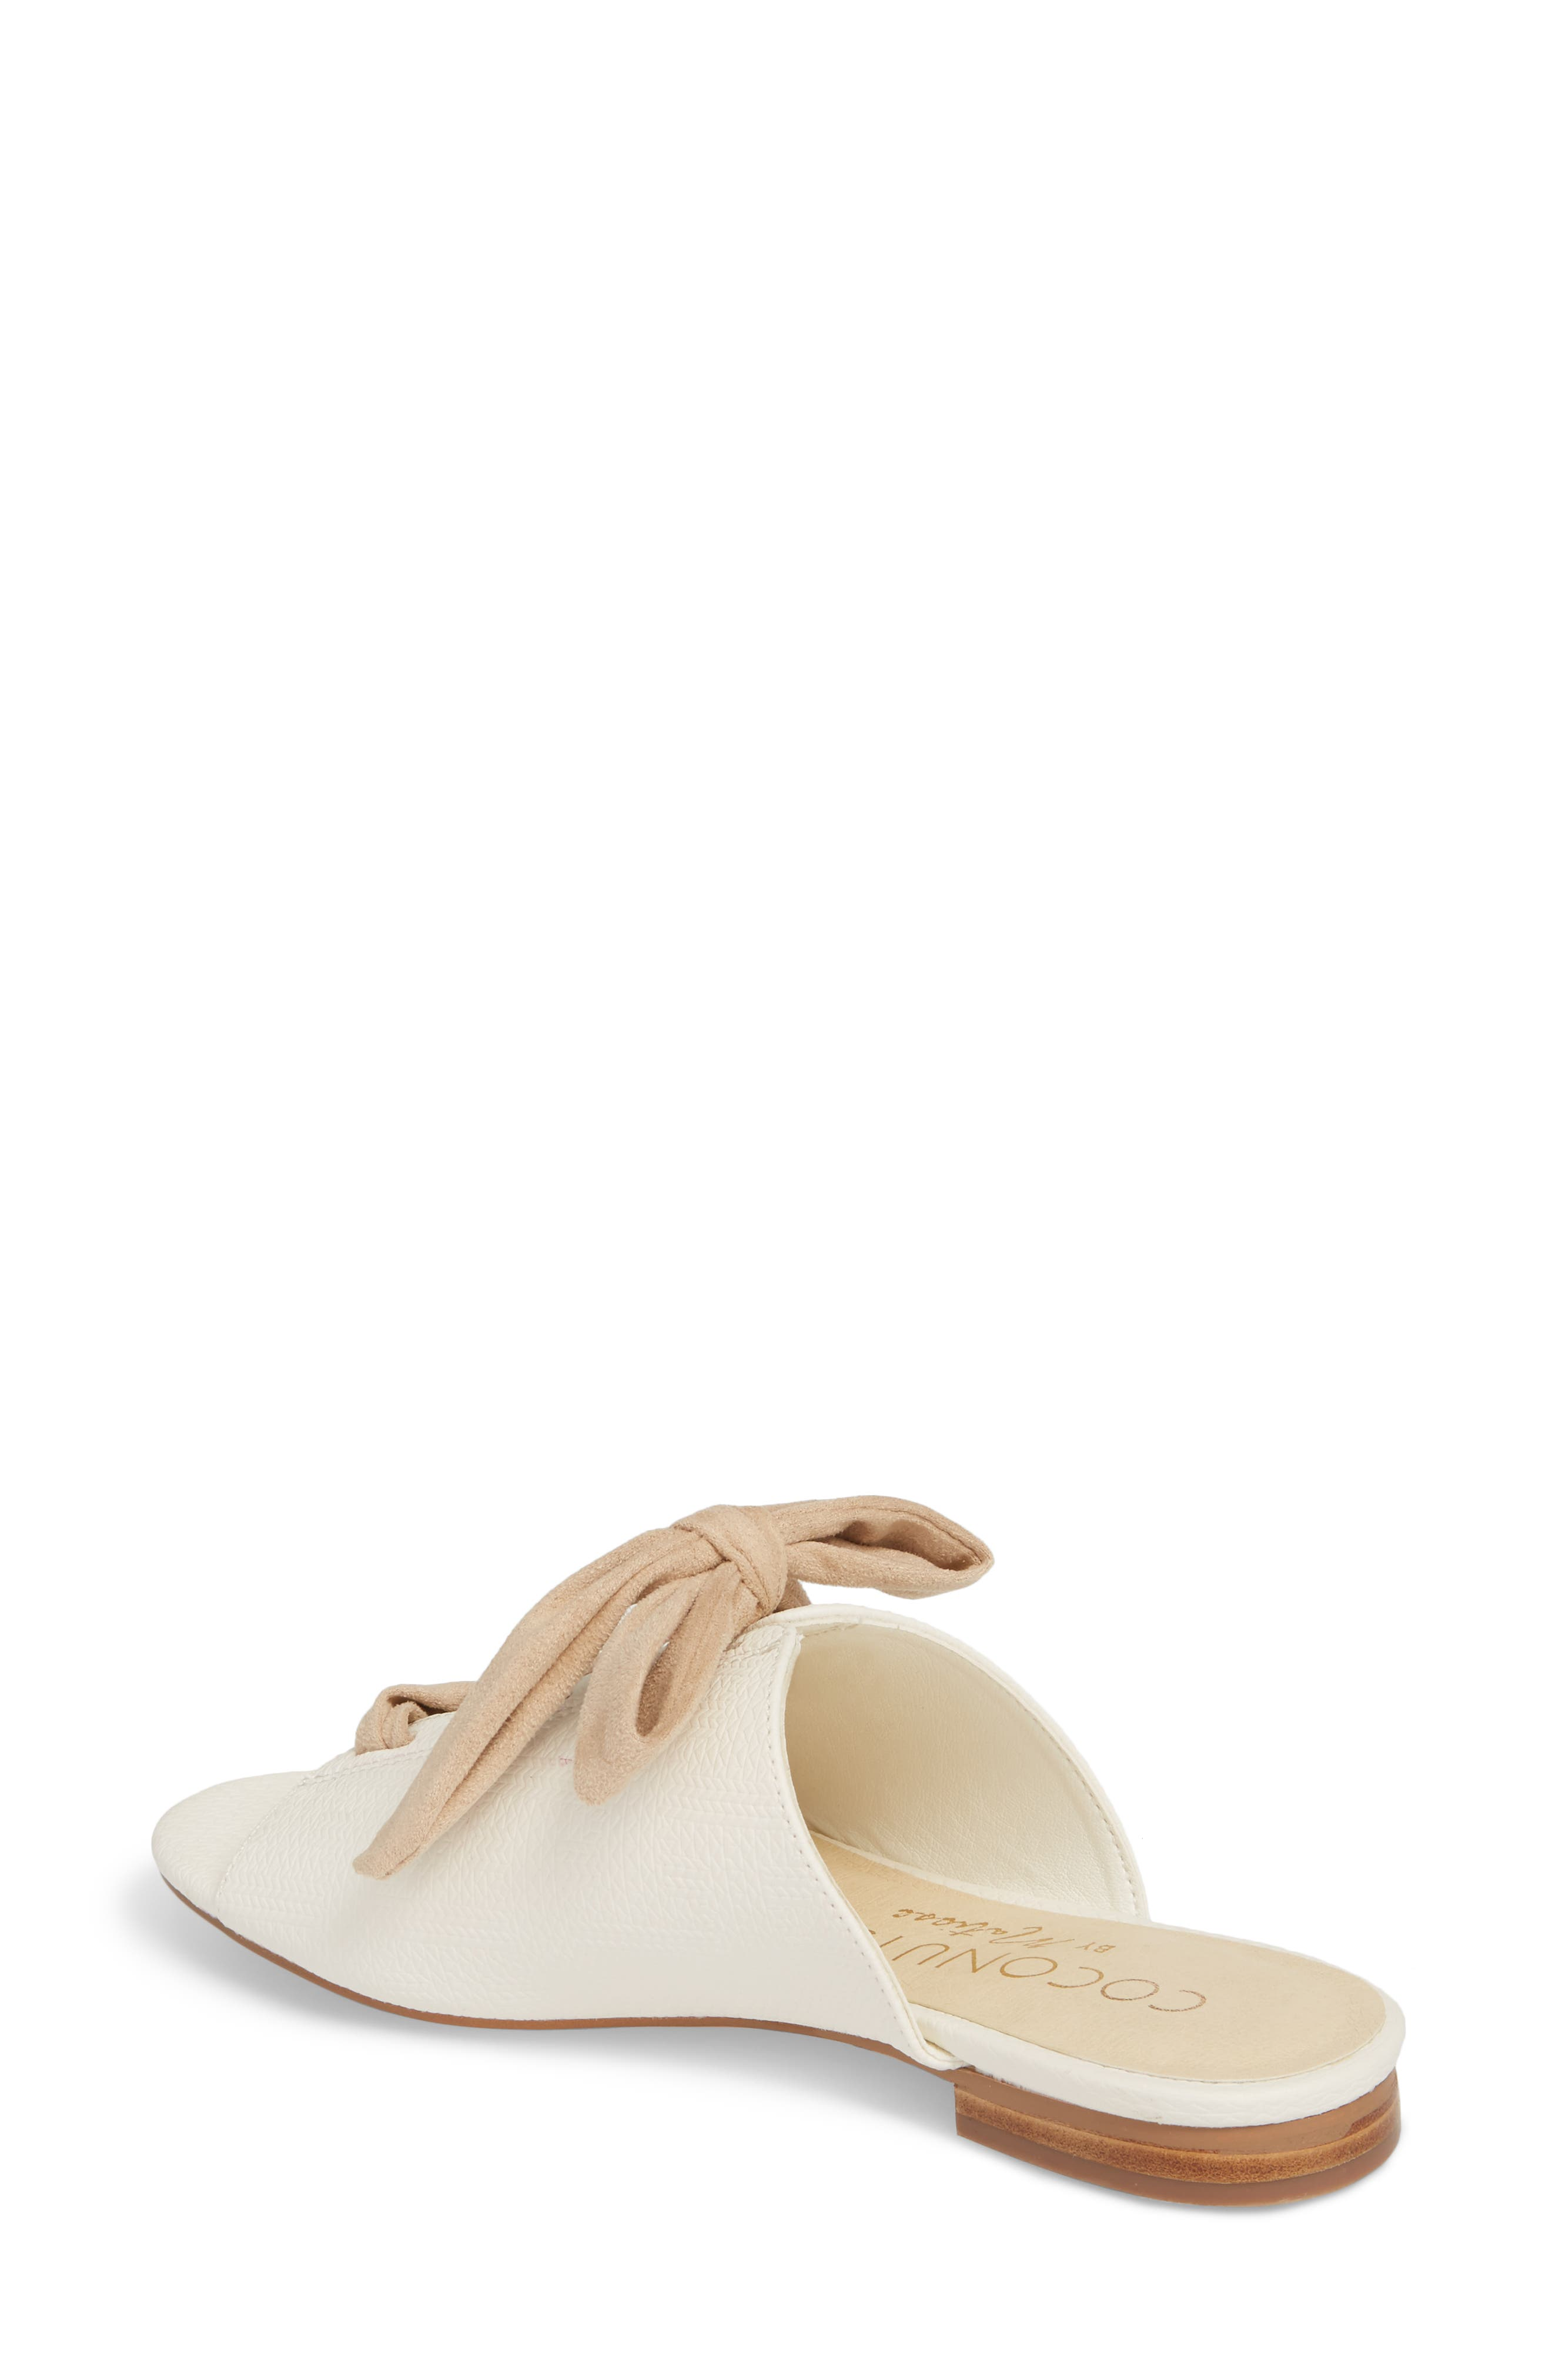 Alternate Image 2  - Coconuts by Matisse Santorini Sandal (Women)